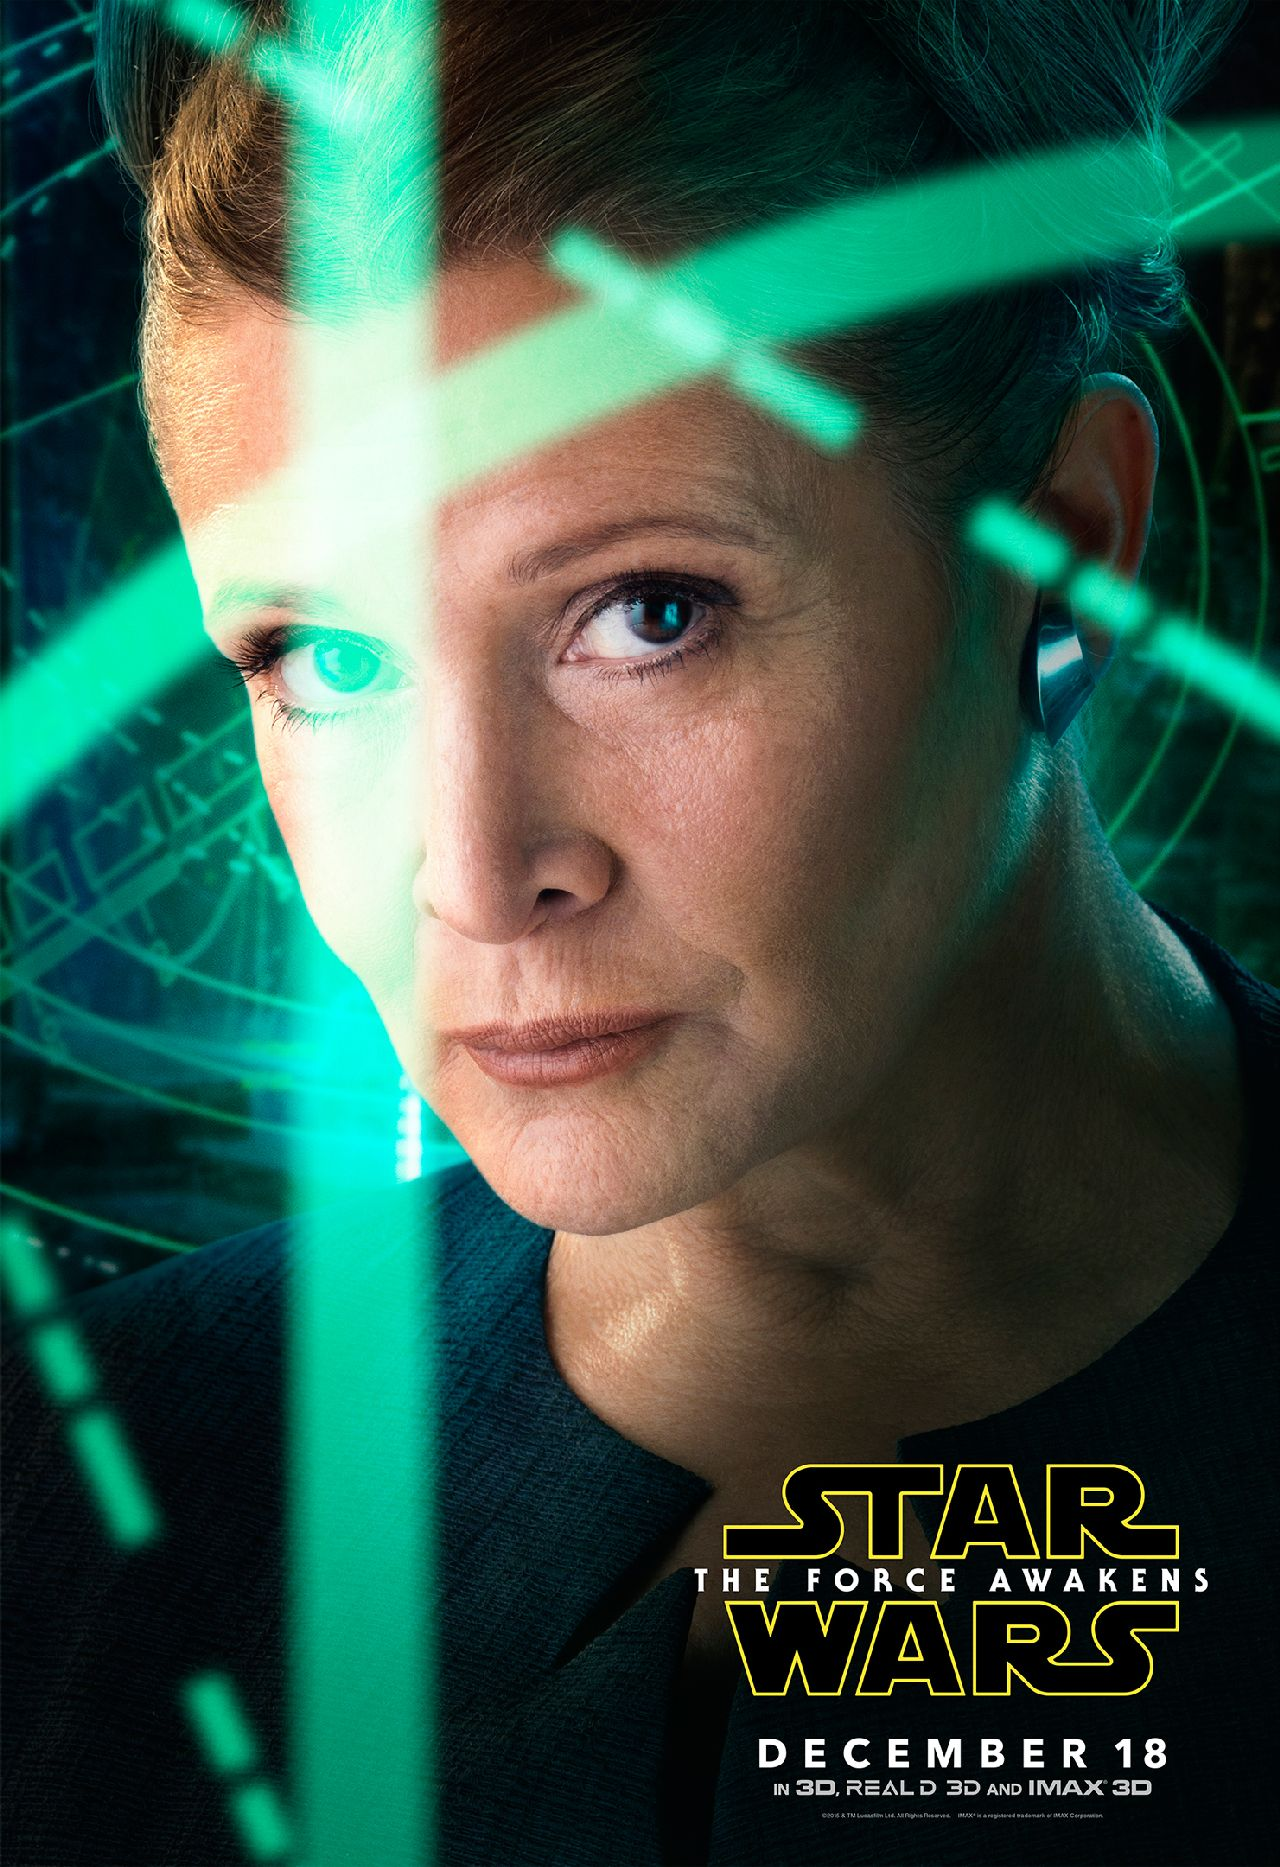 Star Wars: The Force Awakens - Leia Character Poster